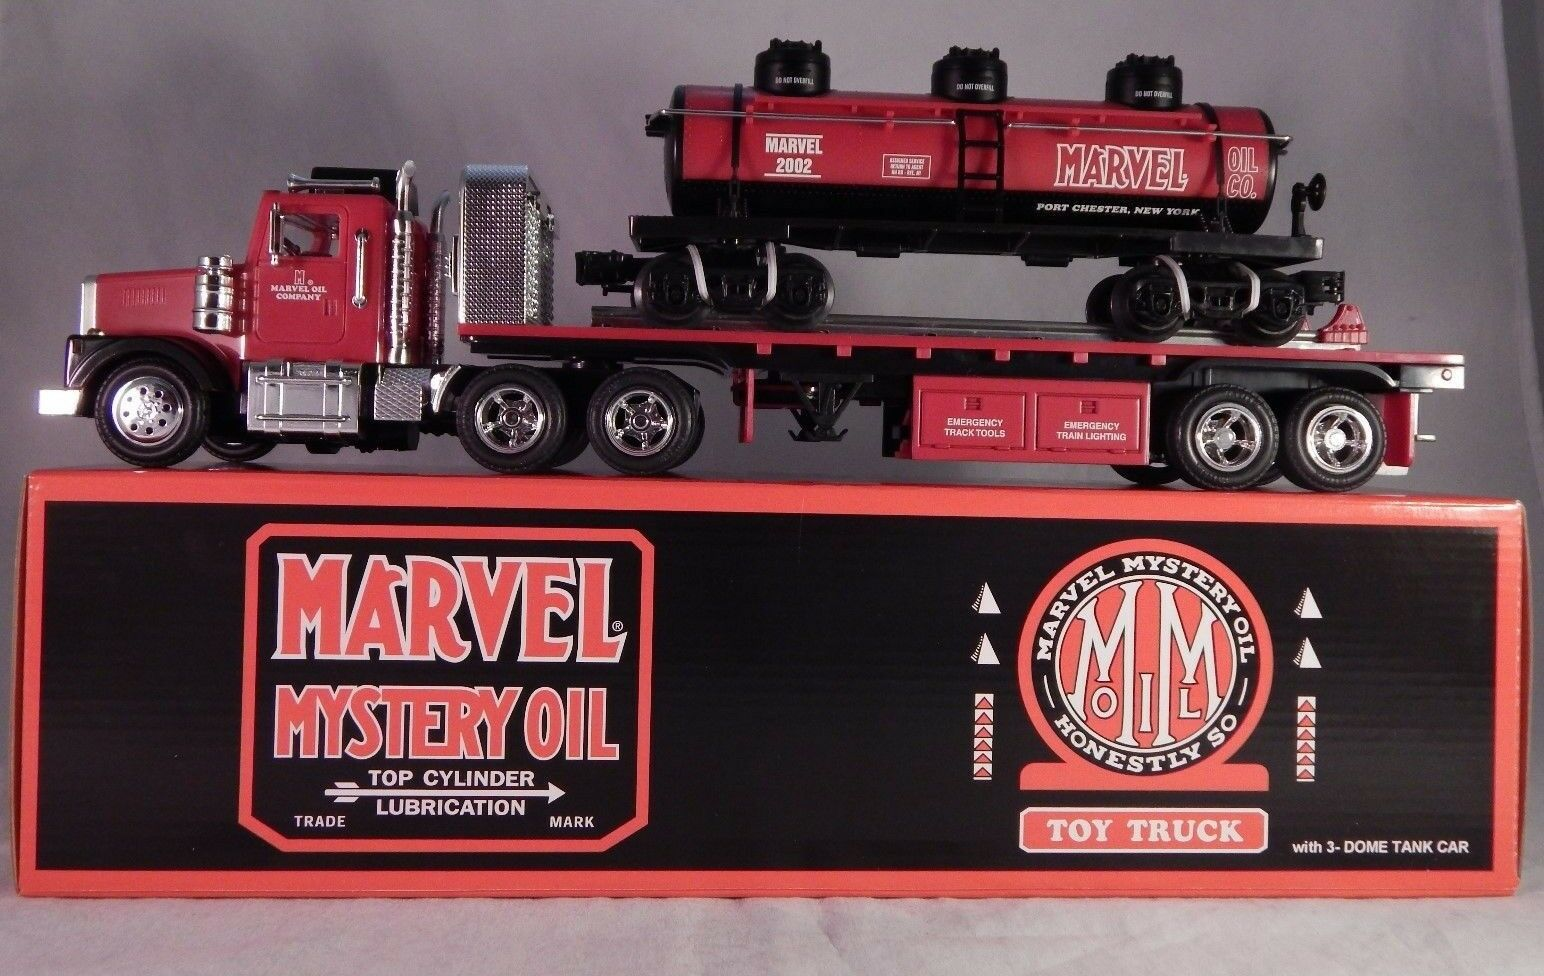 Marvel Mystery Oil Toy Toy Toy Truck Flatbed 3-Dome Tank Car 504 Made NEW 3cb